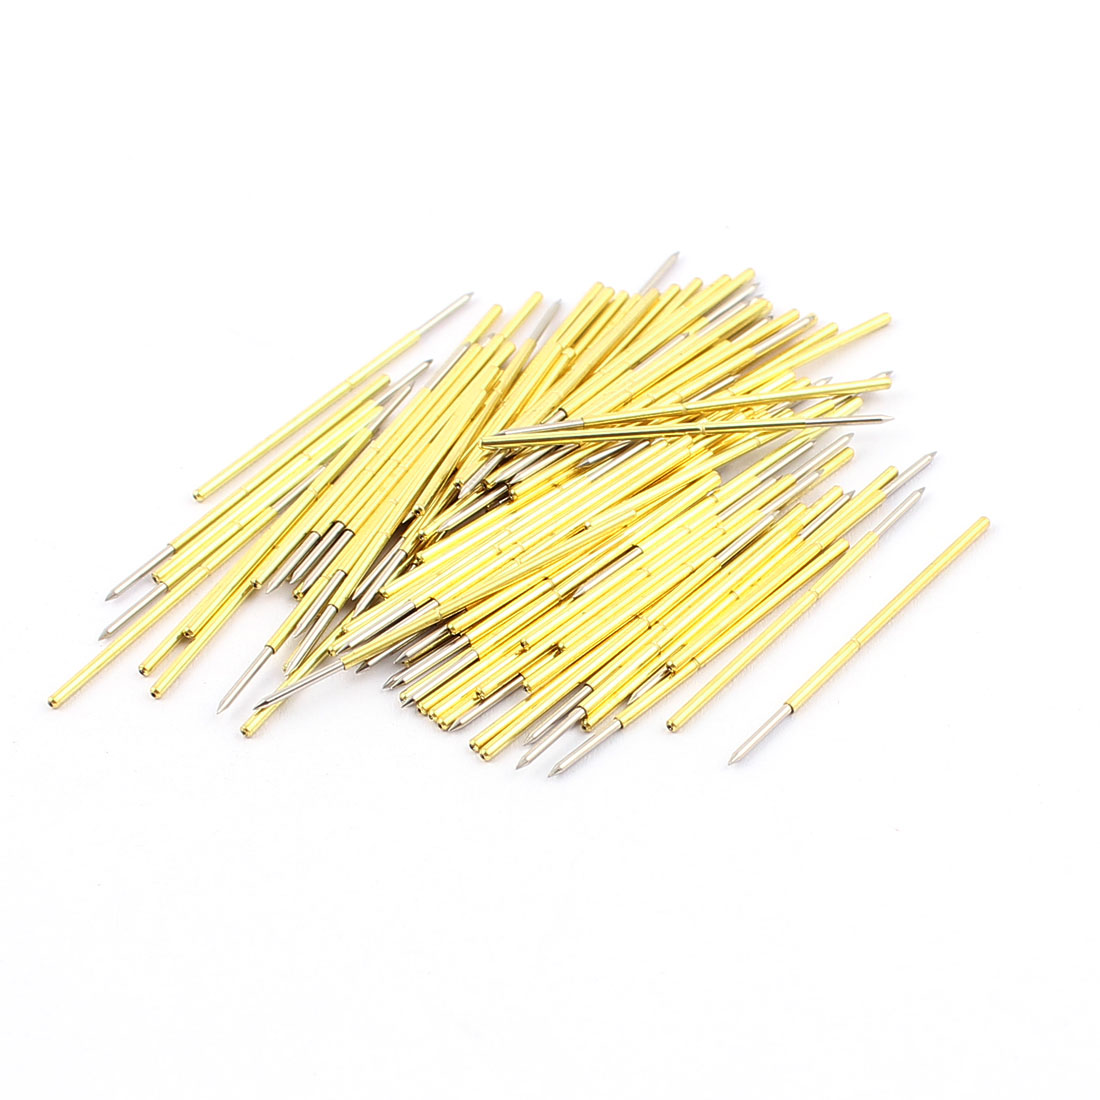 100Pcs P75B 0.7mm Dia Spear Tip 32mm Long Metal Spring Test Probes Testing Pins Gold Tone